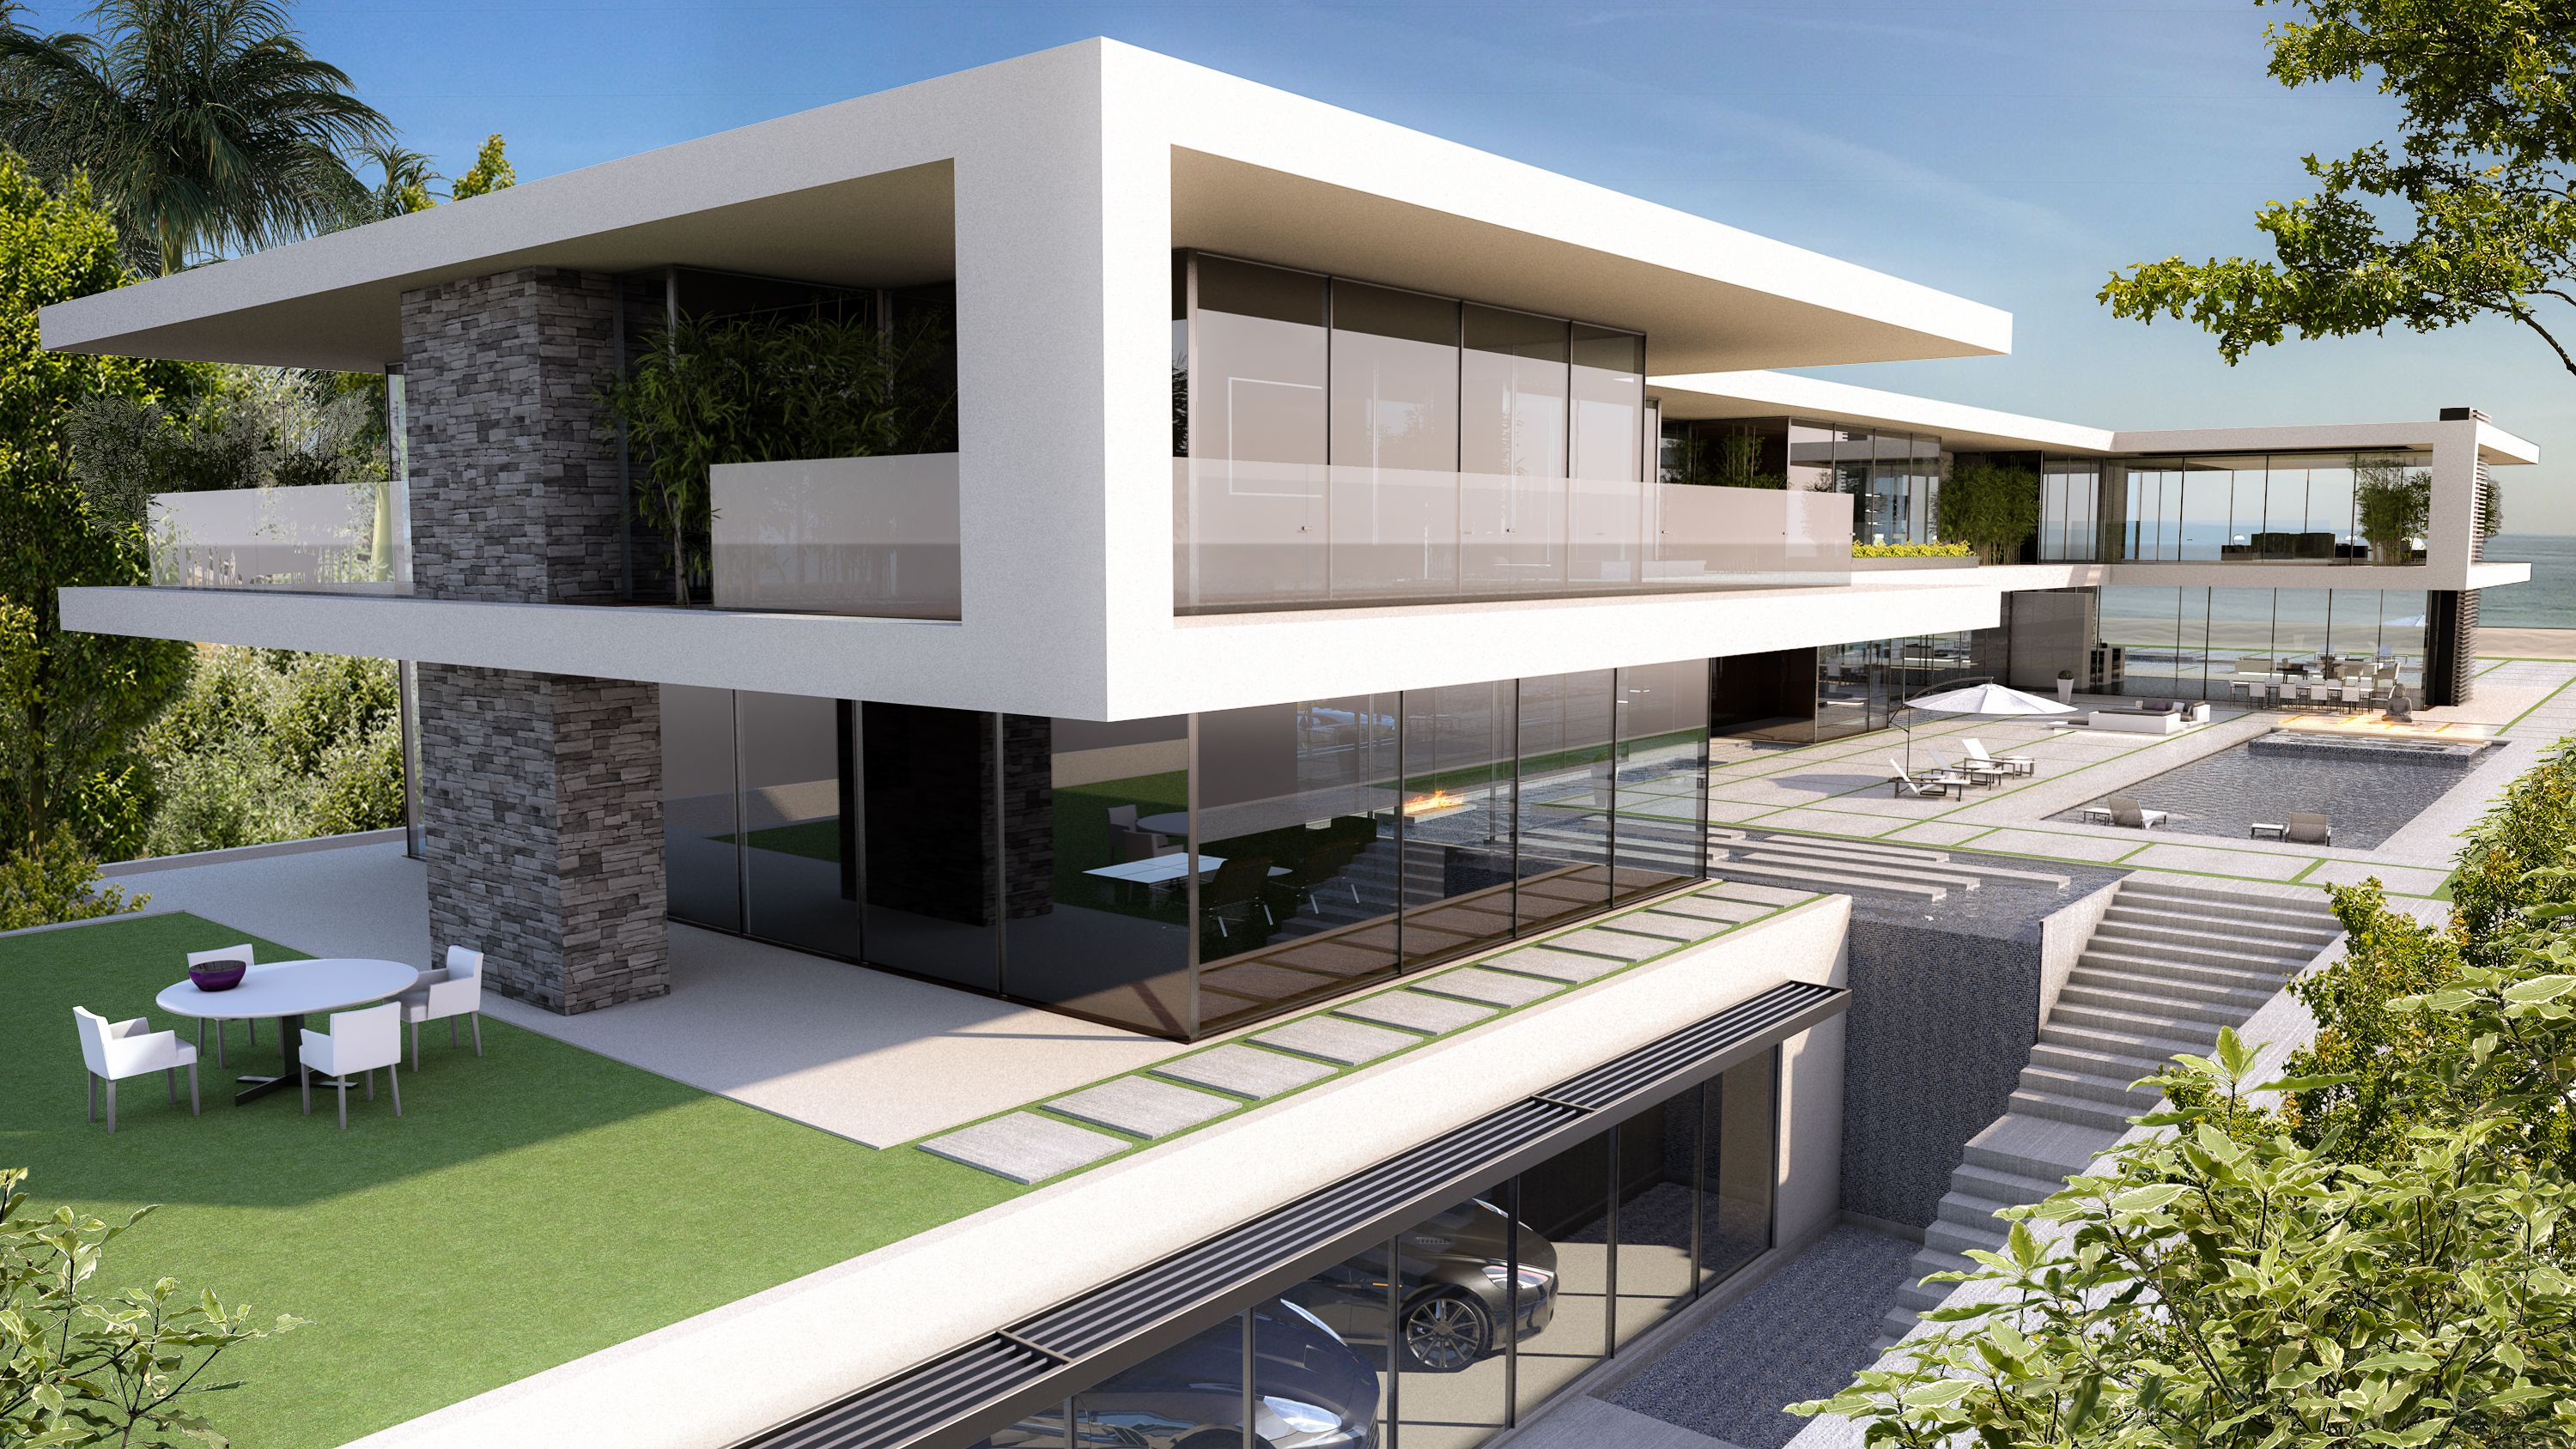 Render of a luxury house on the ocean designed by grey for Case bellissime moderne